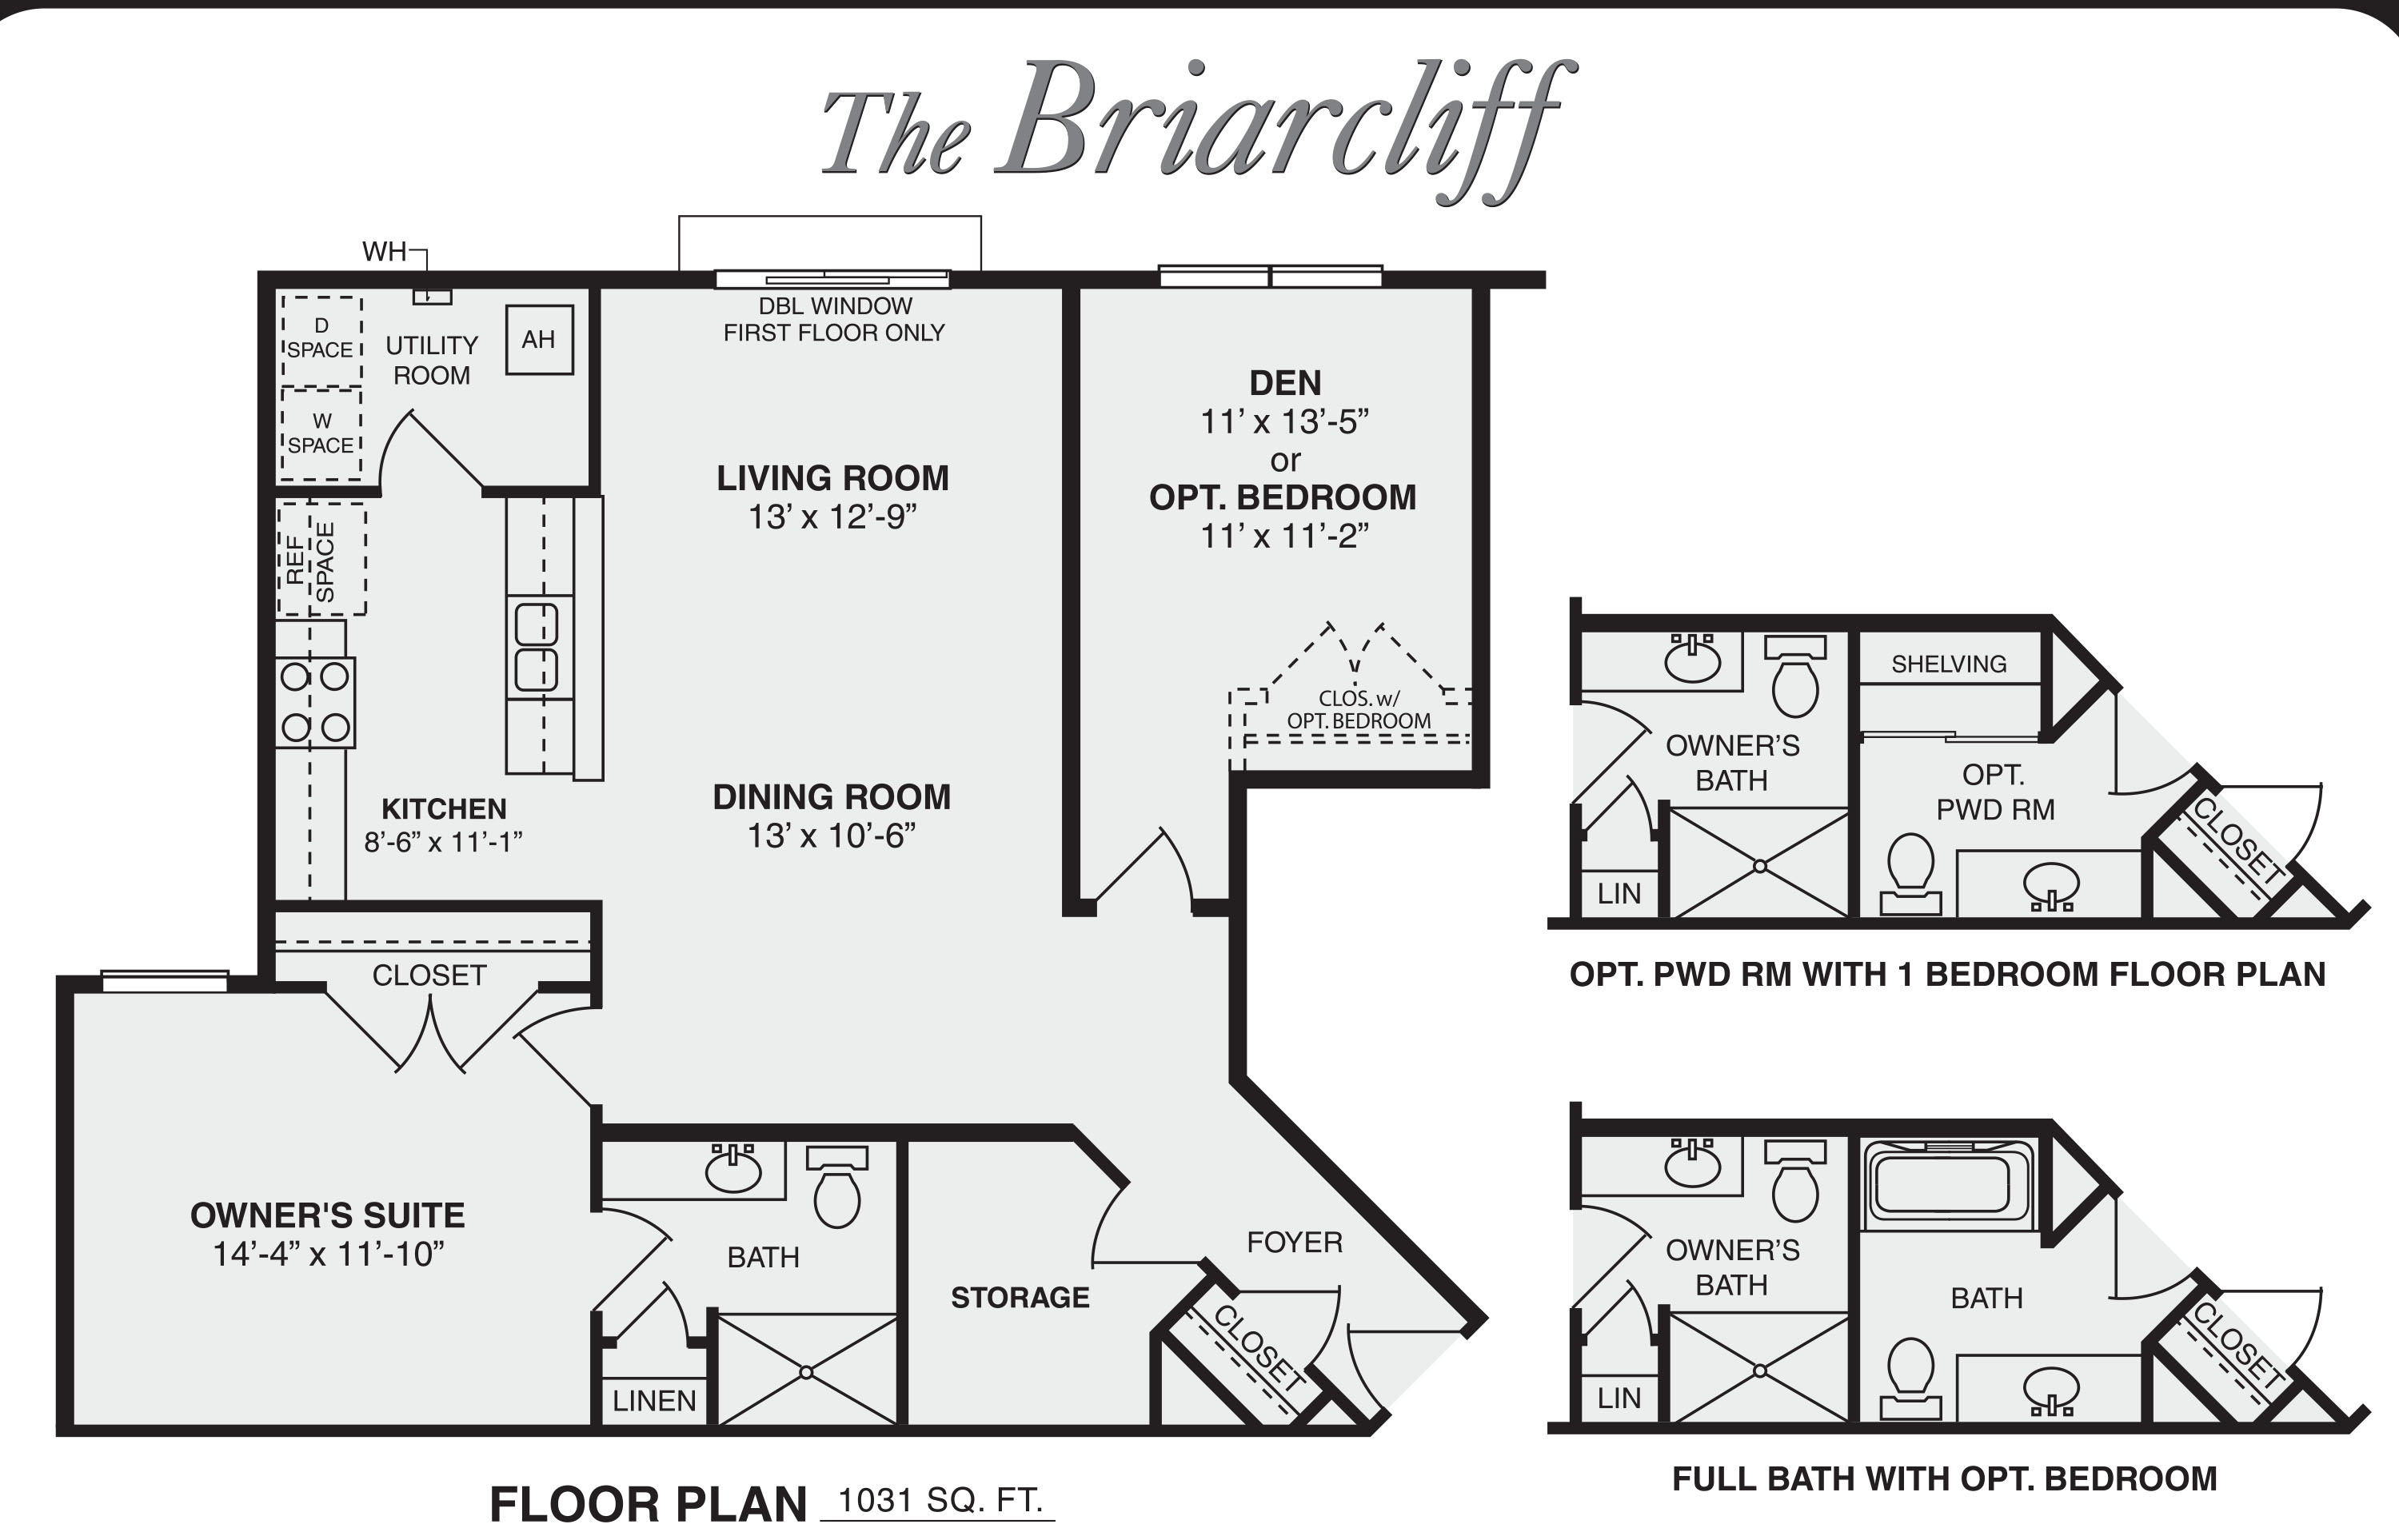 homes_avondale_briarcliff